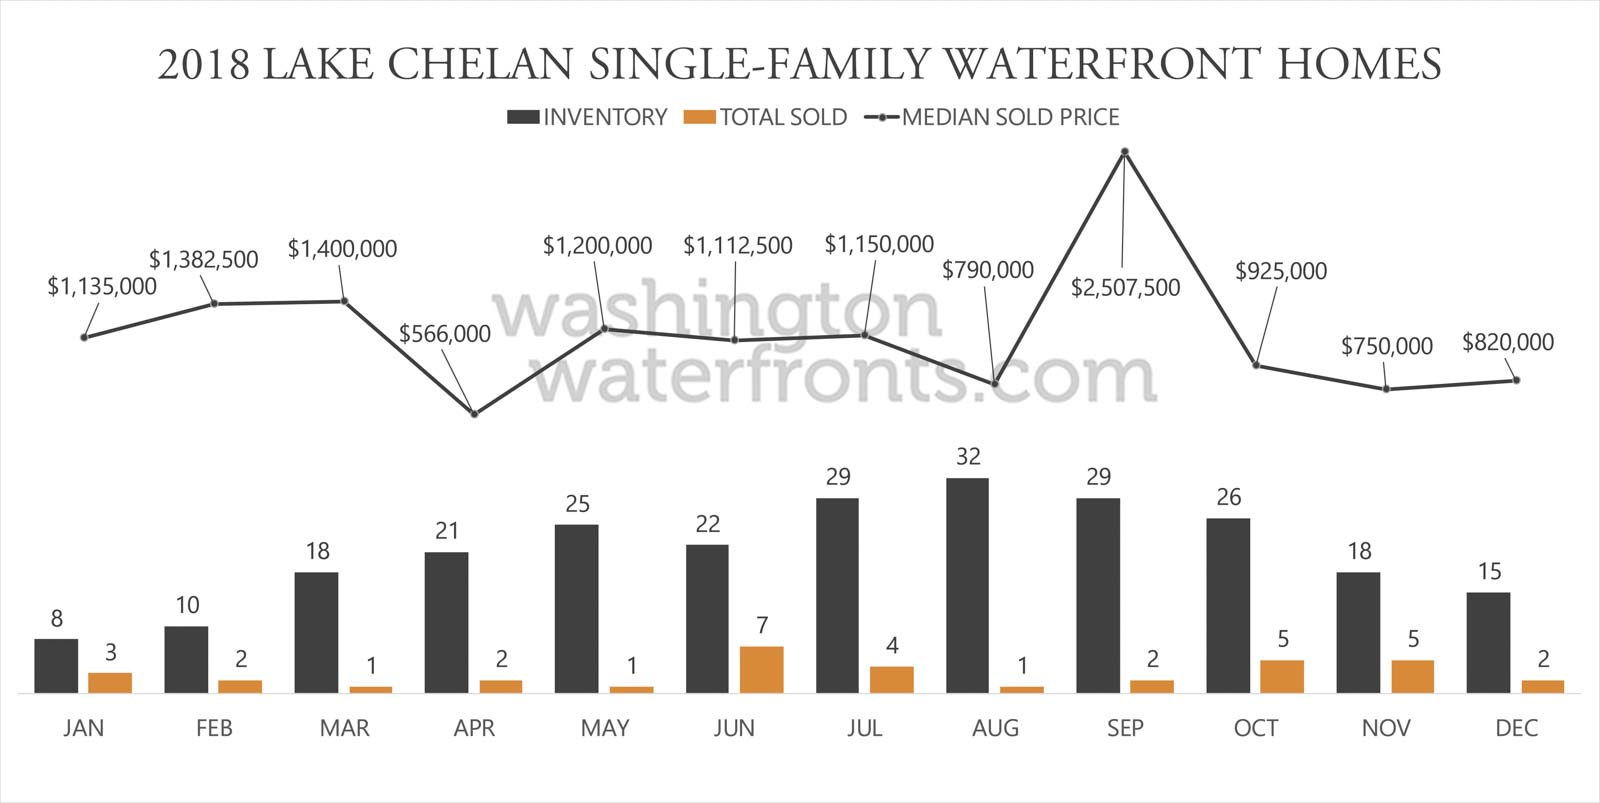 Lake Chelan Waterfront Inventory